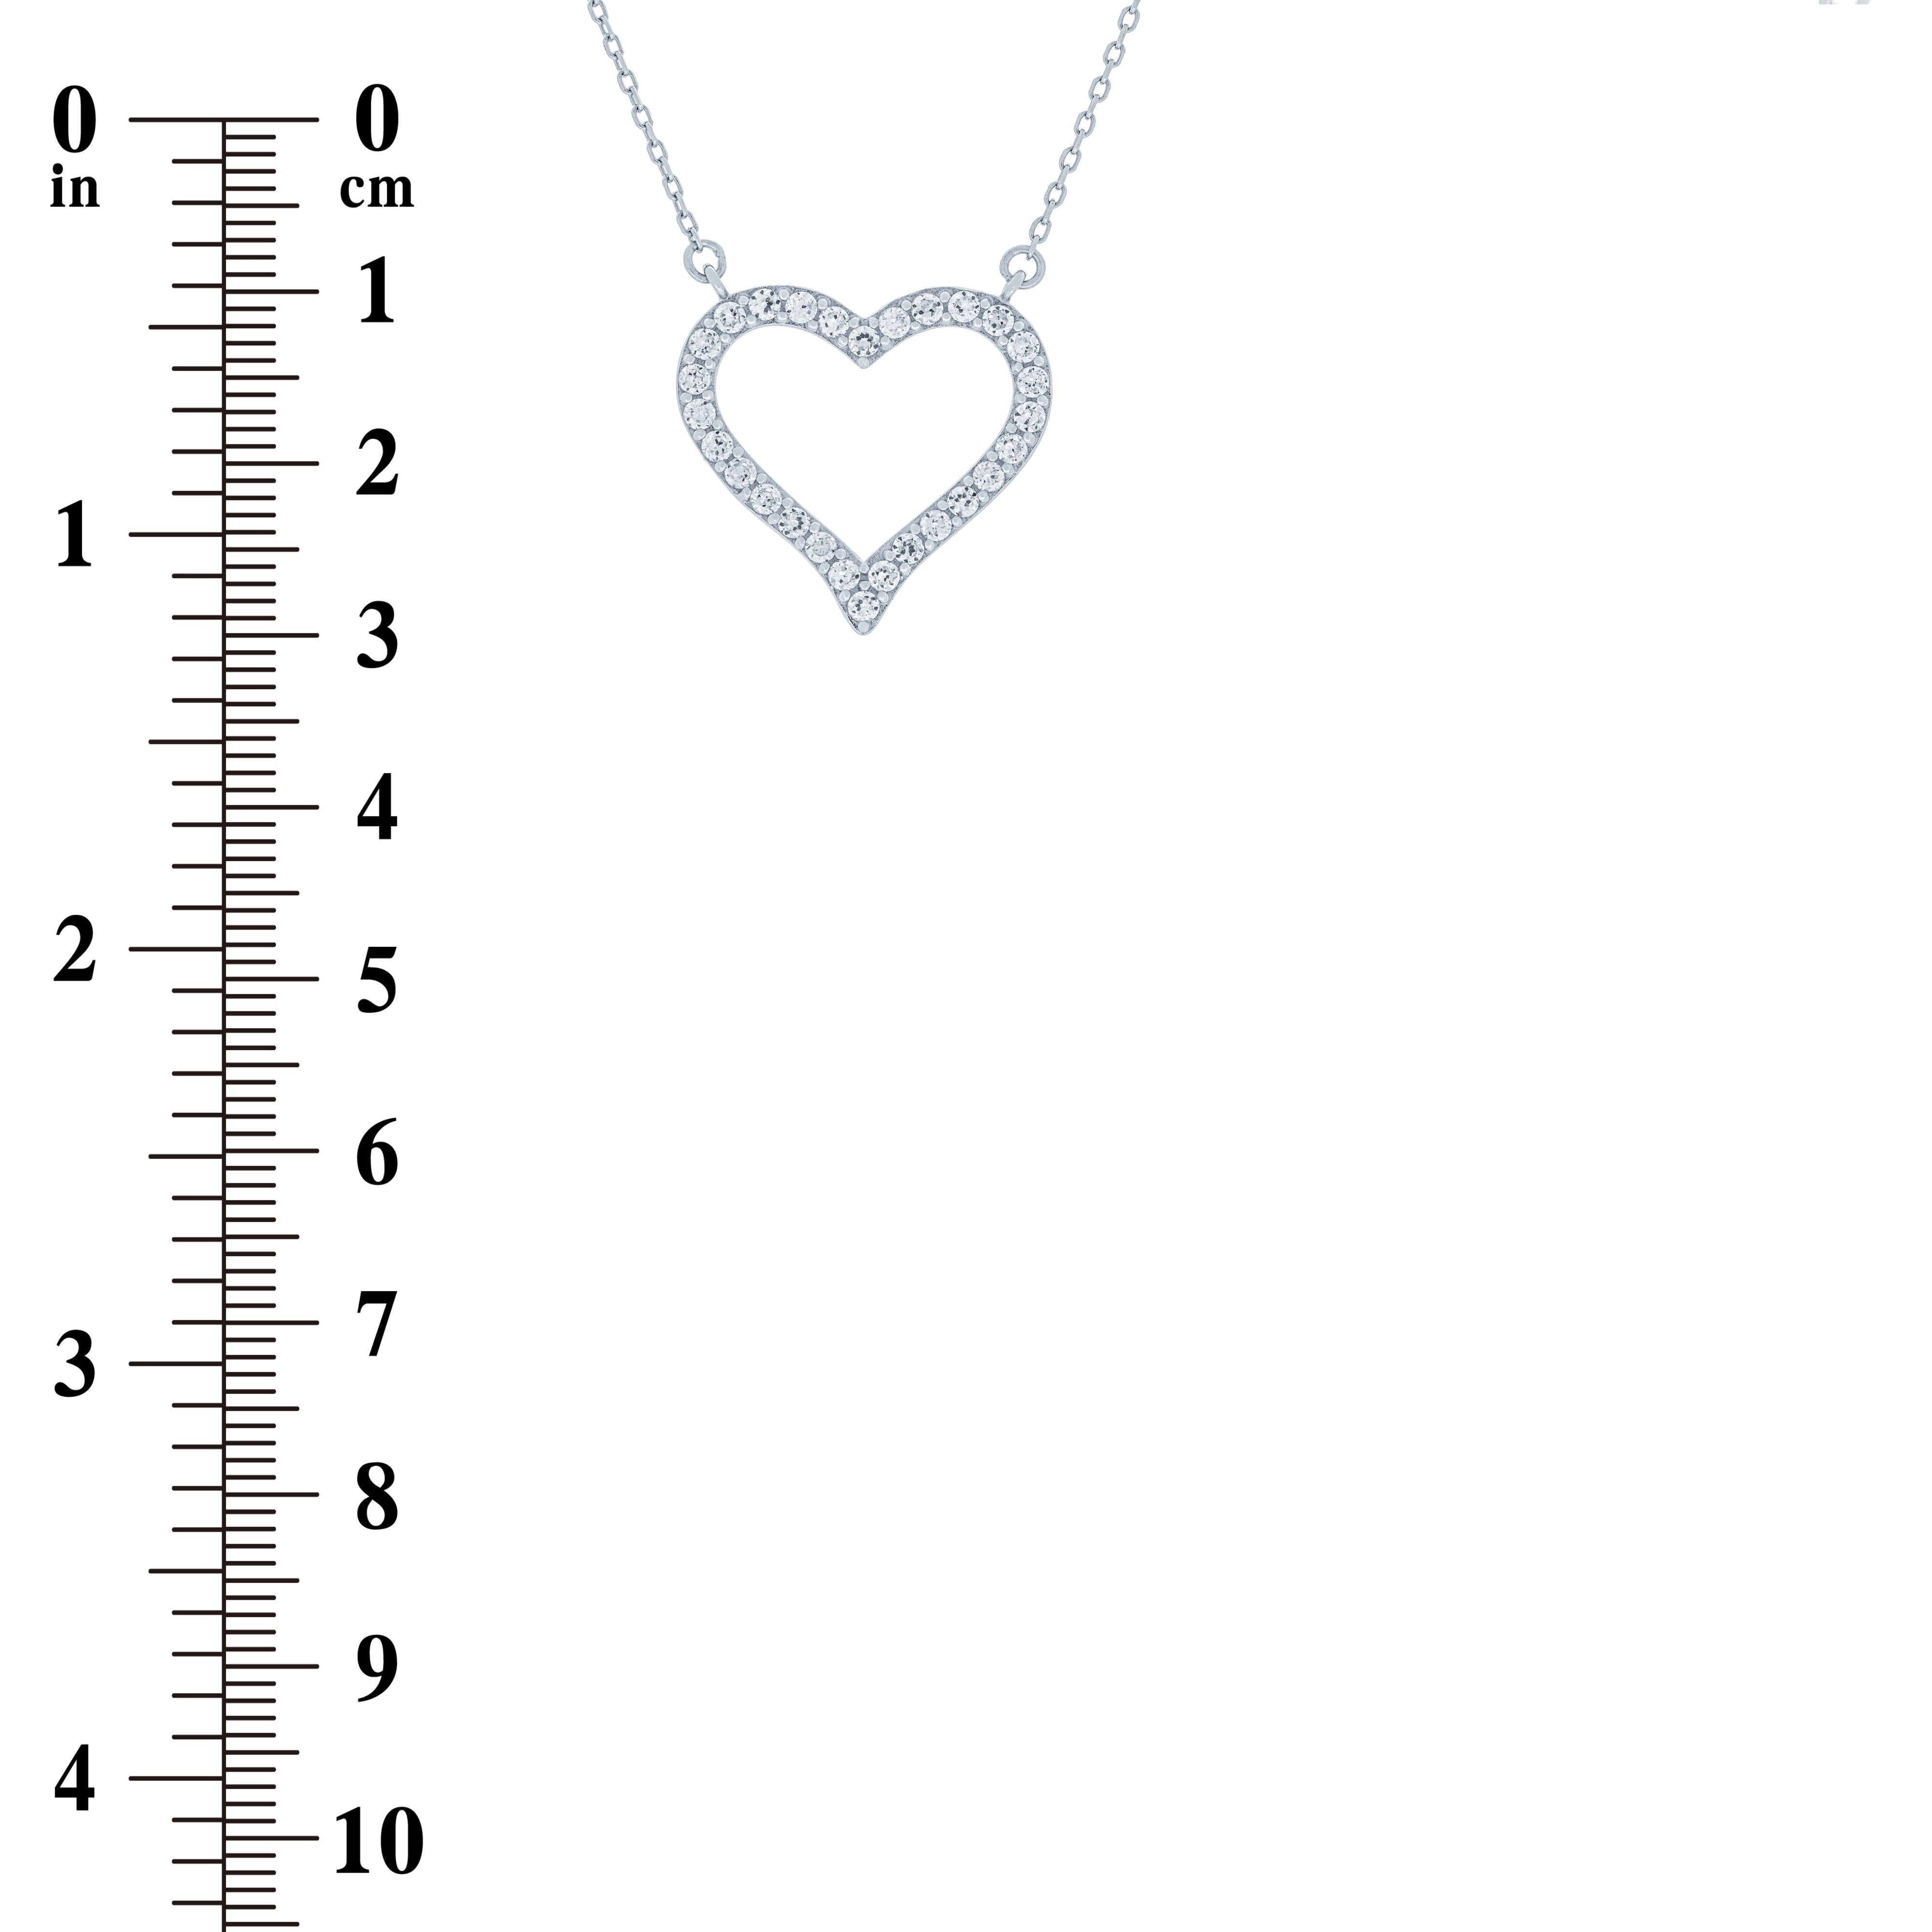 (100138) White Cubic Zirconia Heart Pendant Necklace In Sterling Silver